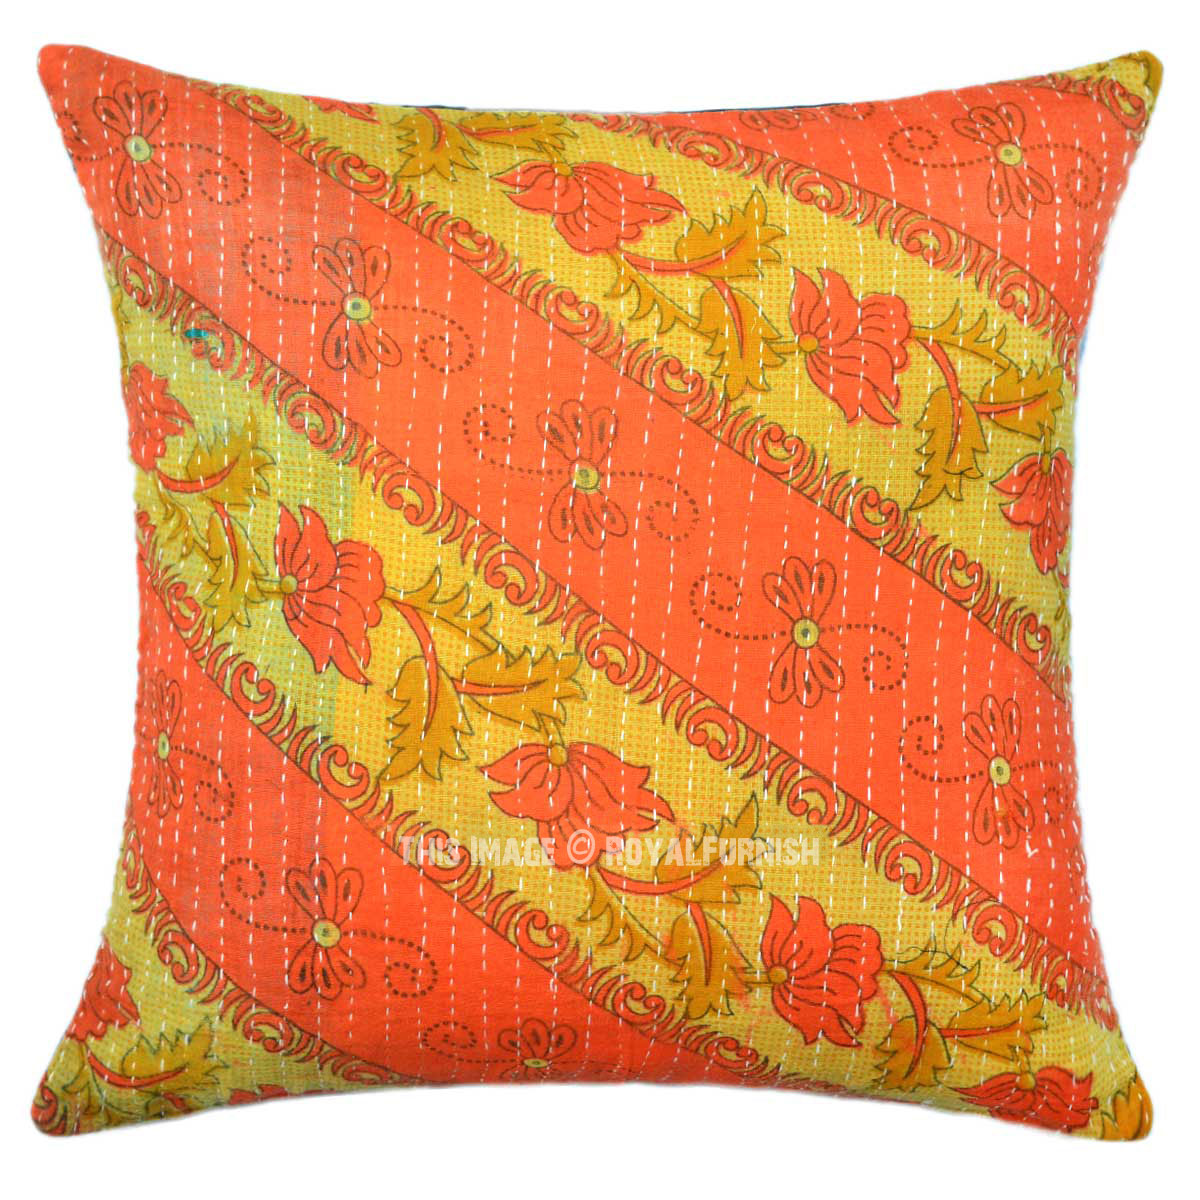 Vintage Decorative Pillow : Decorative 16X16 Vintage Kantha Throw Pillow Cover - RoyalFurnish.com